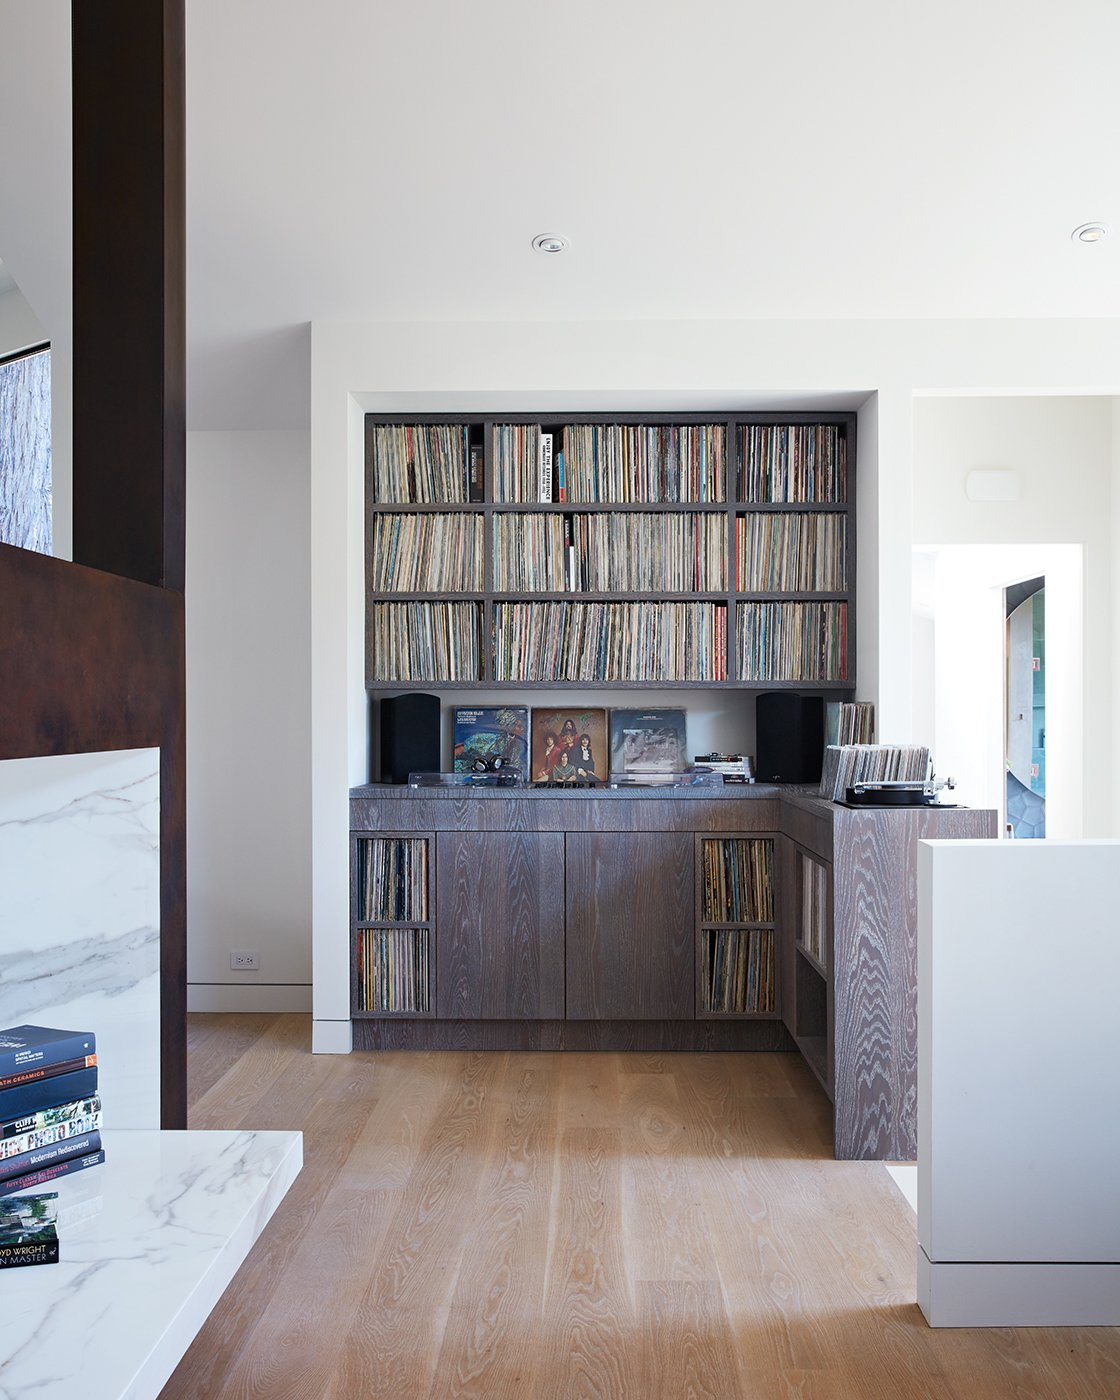 Storage Room, Shelves Storage Type, and Cabinet Storage Type  Best Photos from Thoughtful Design Details Warm Up a Modern Family Home in Northern California